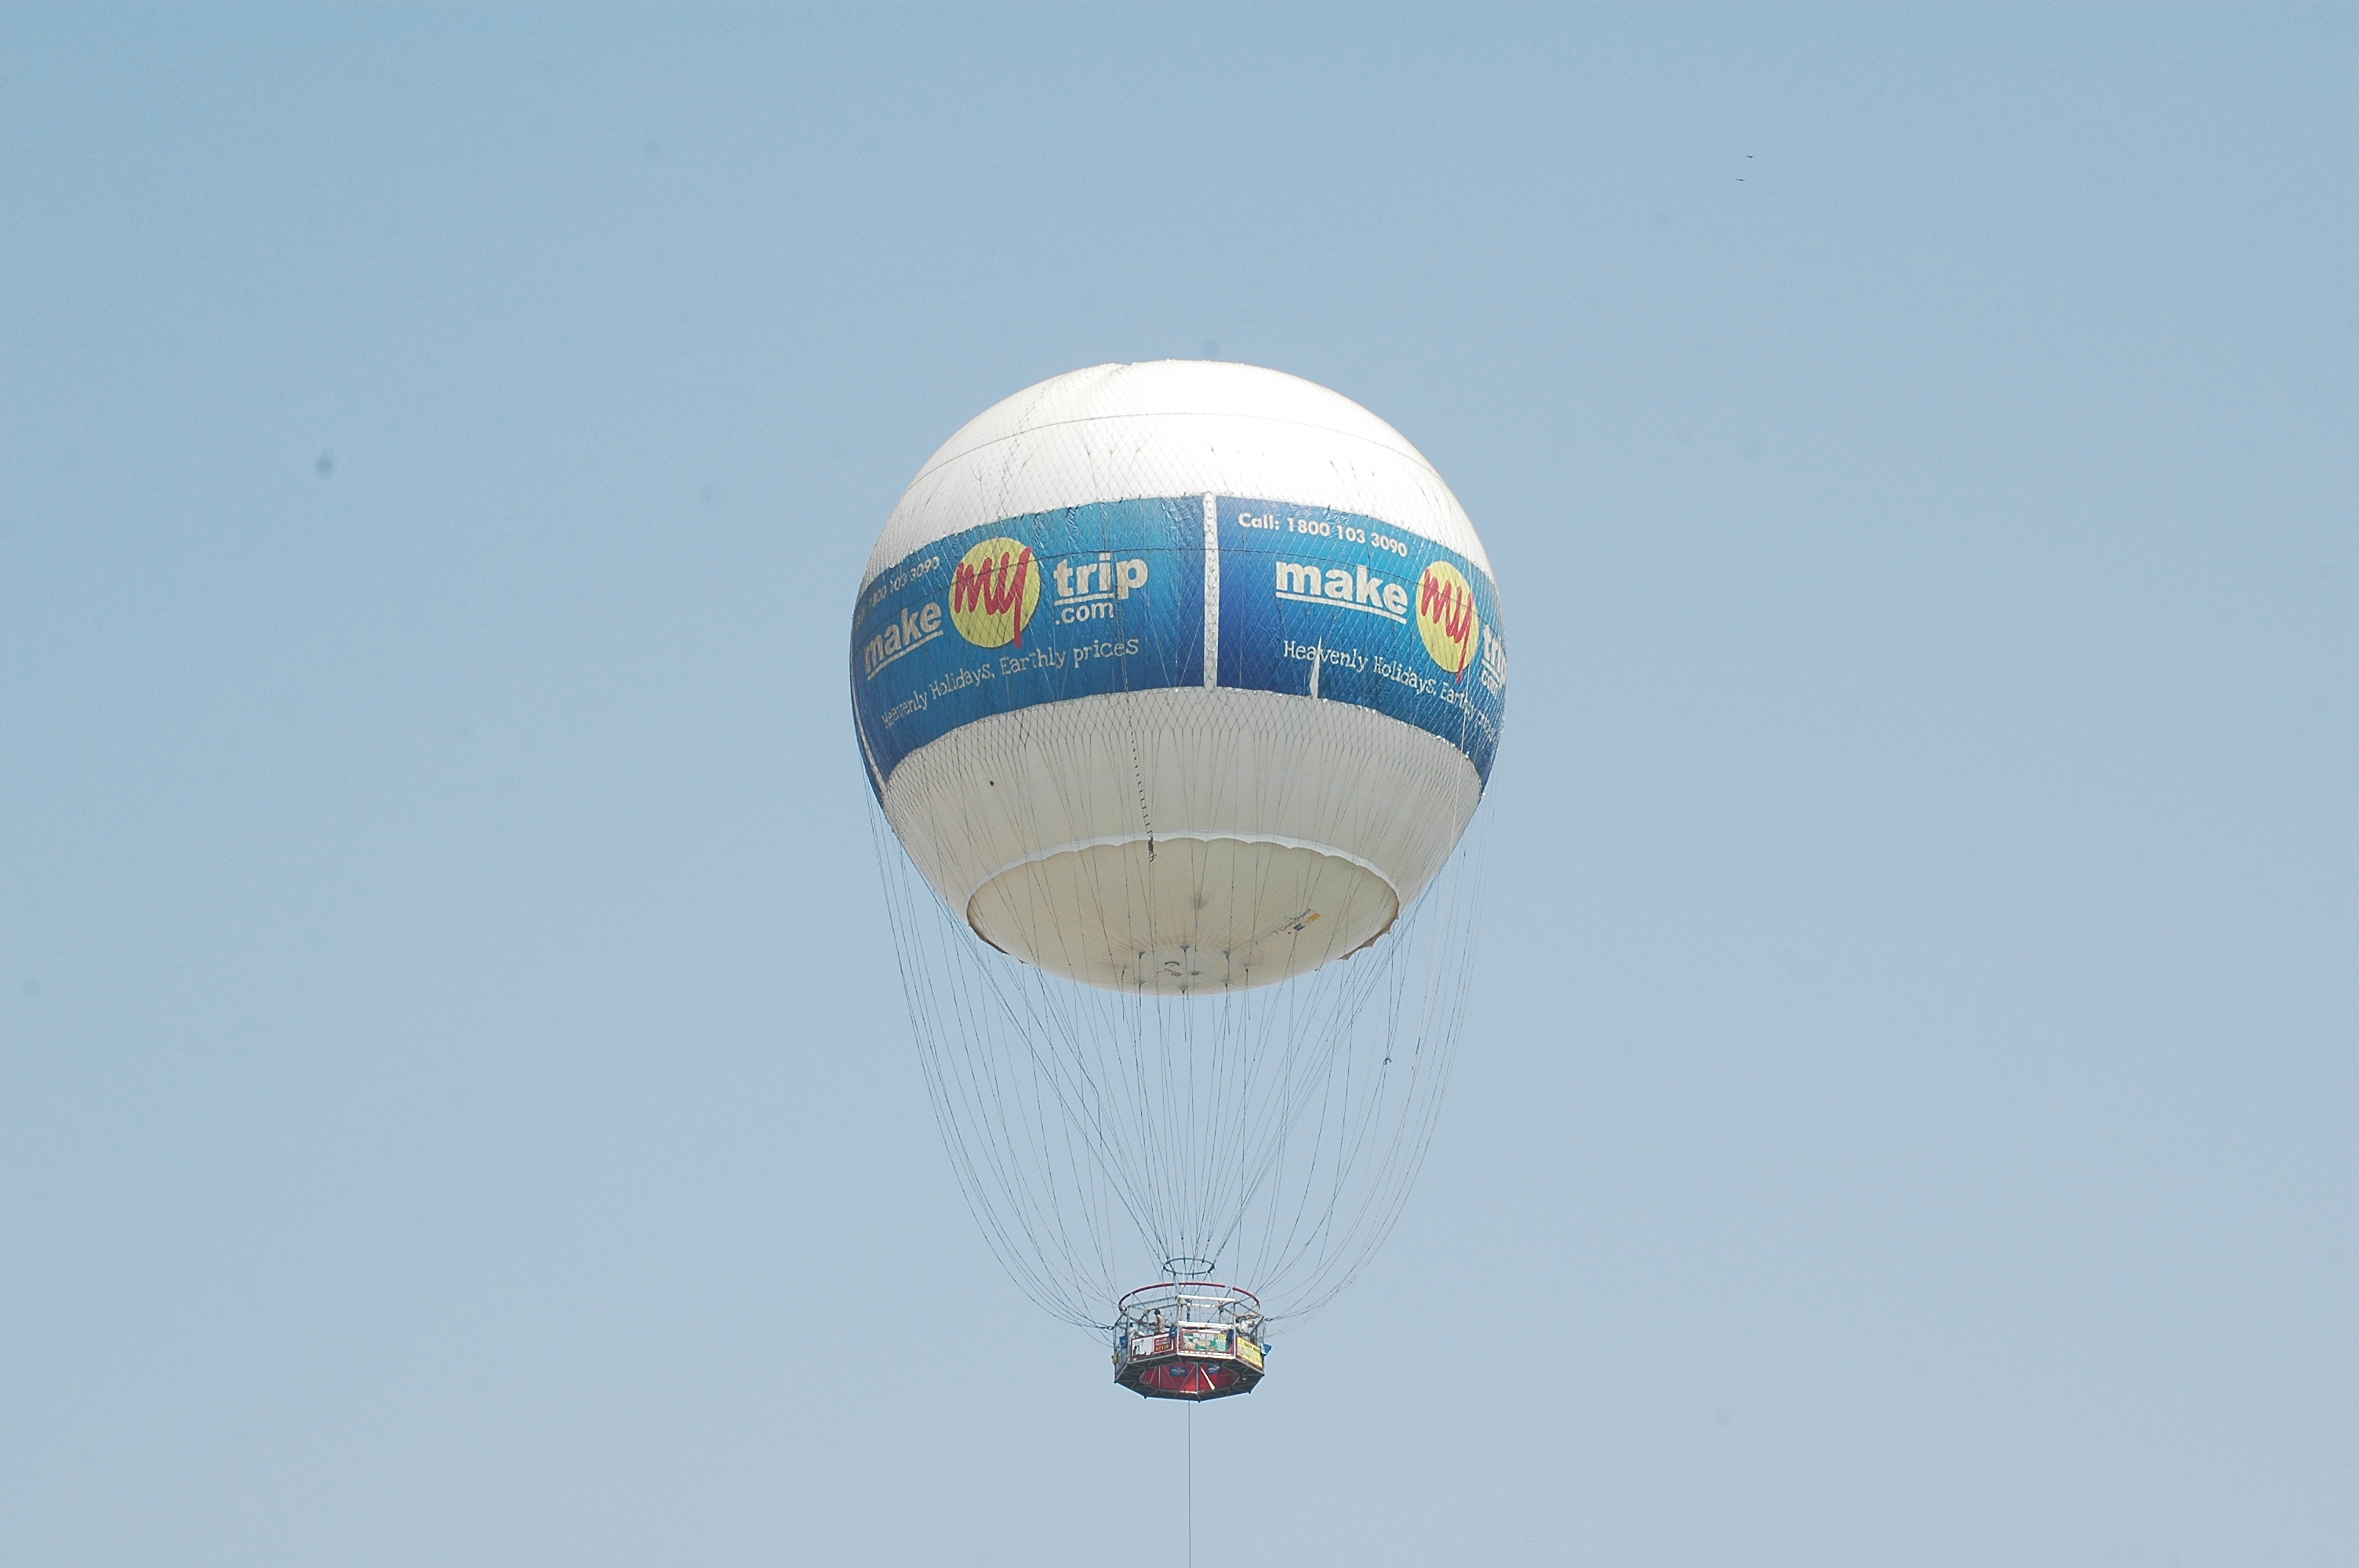 File:Tethered helium balloon Ahmedabad.JPG - Wikimedia Commons